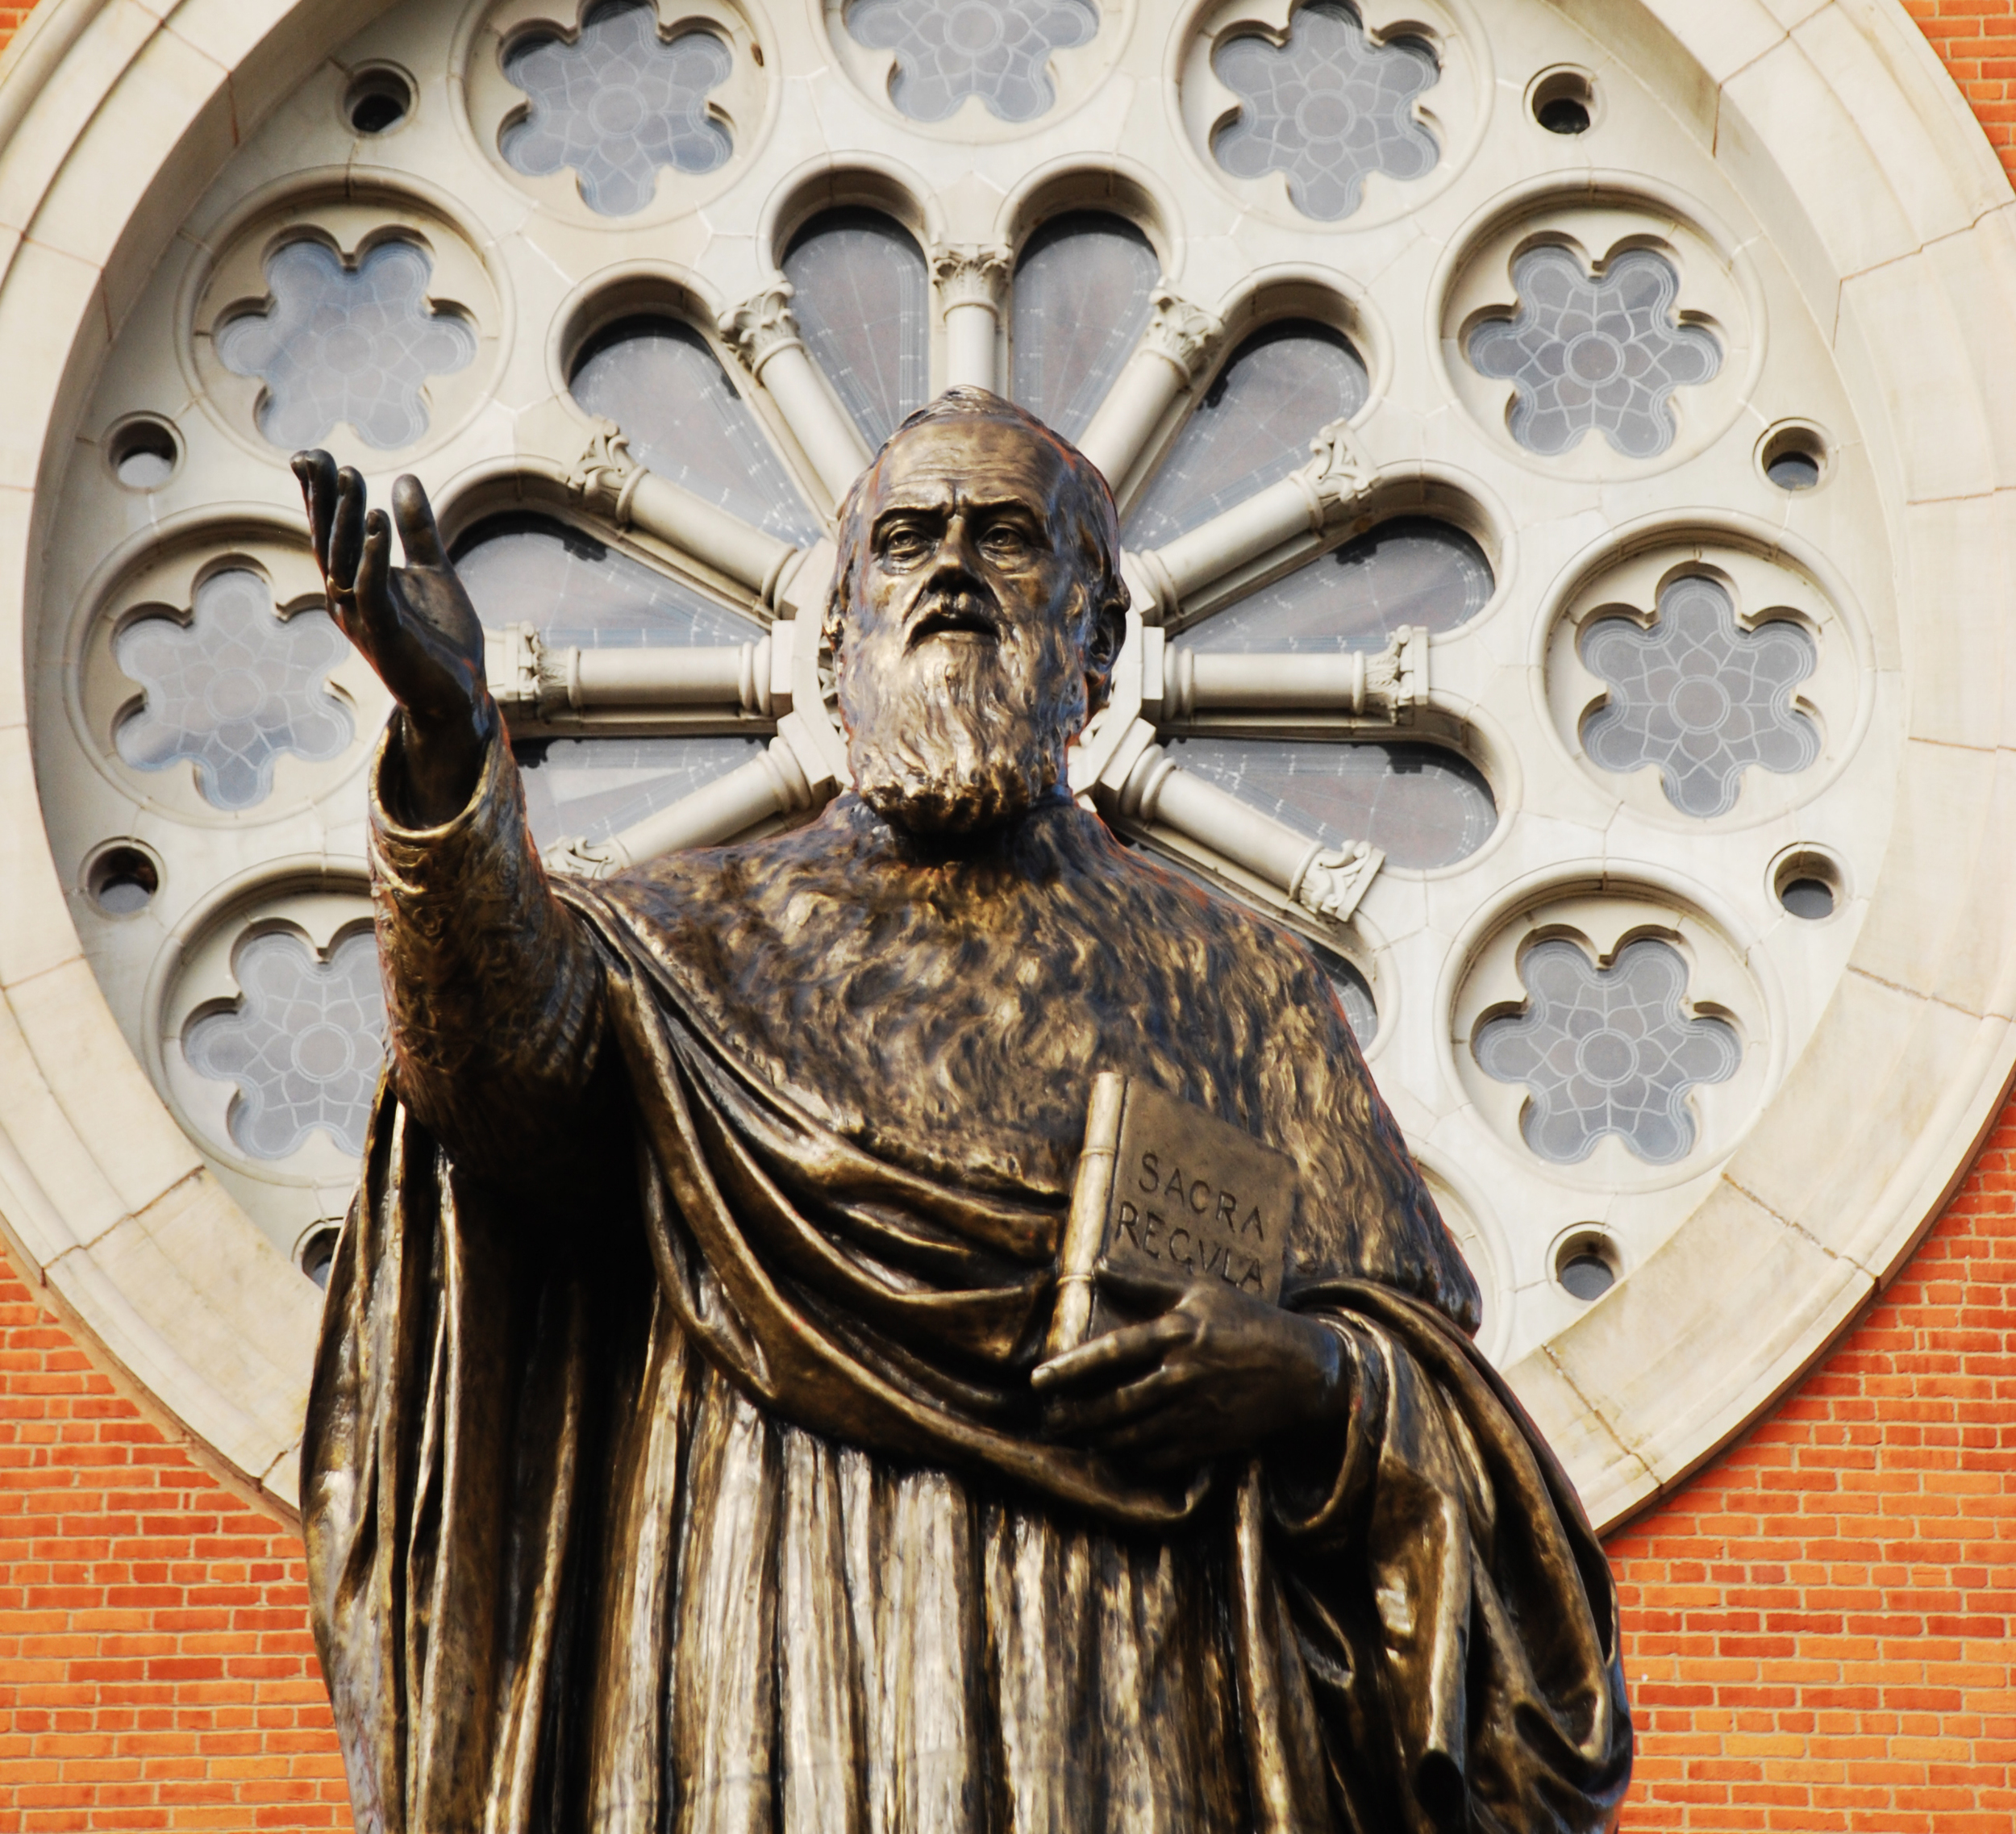 Wimmer Statue at the Saint Vincent Archabbey Basilica